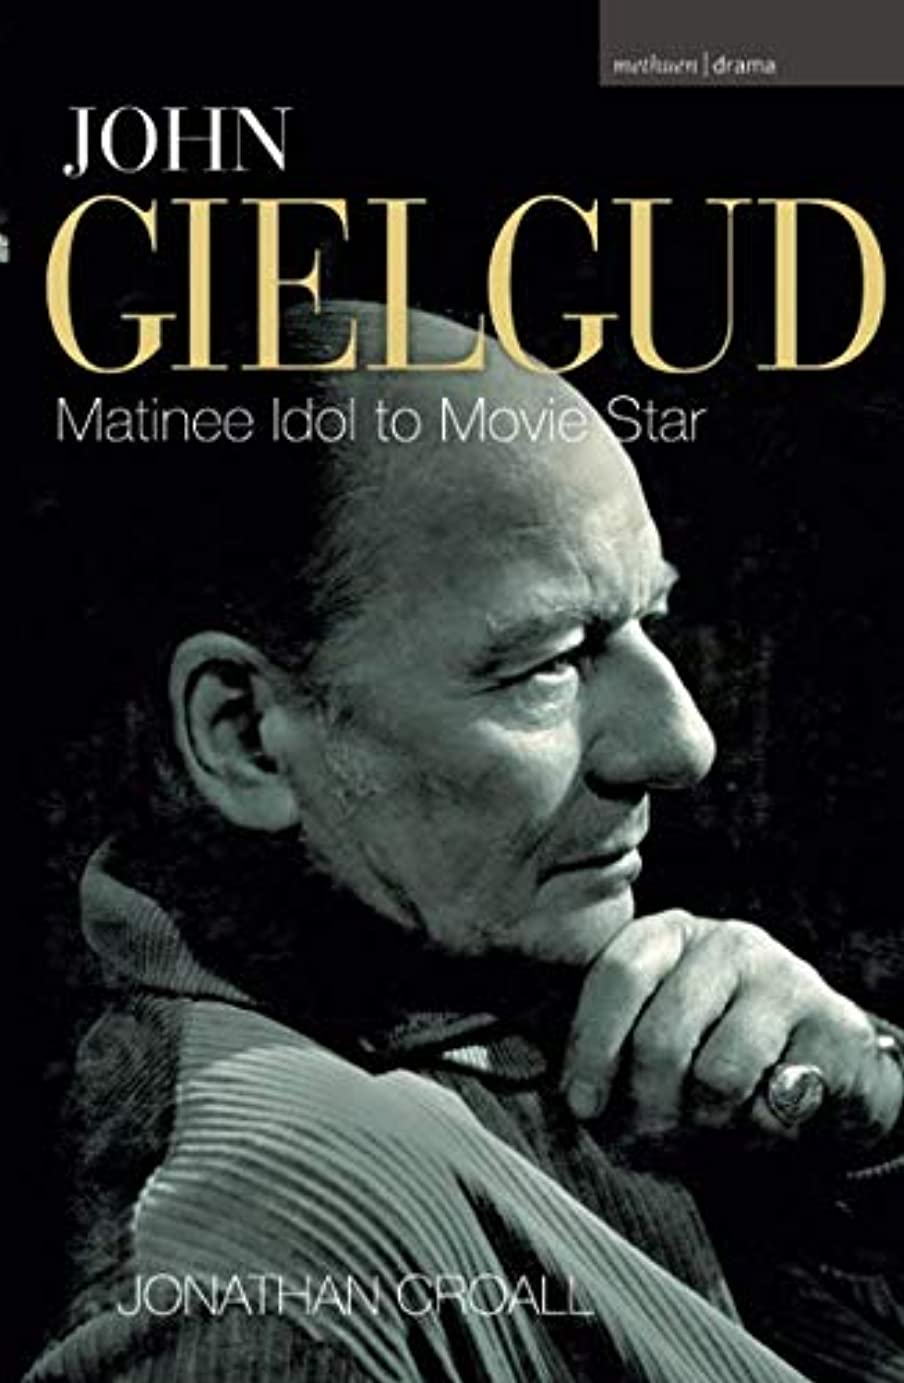 John Gielgud: Matinee Idol to Movie Star (Biography and Autobiography)